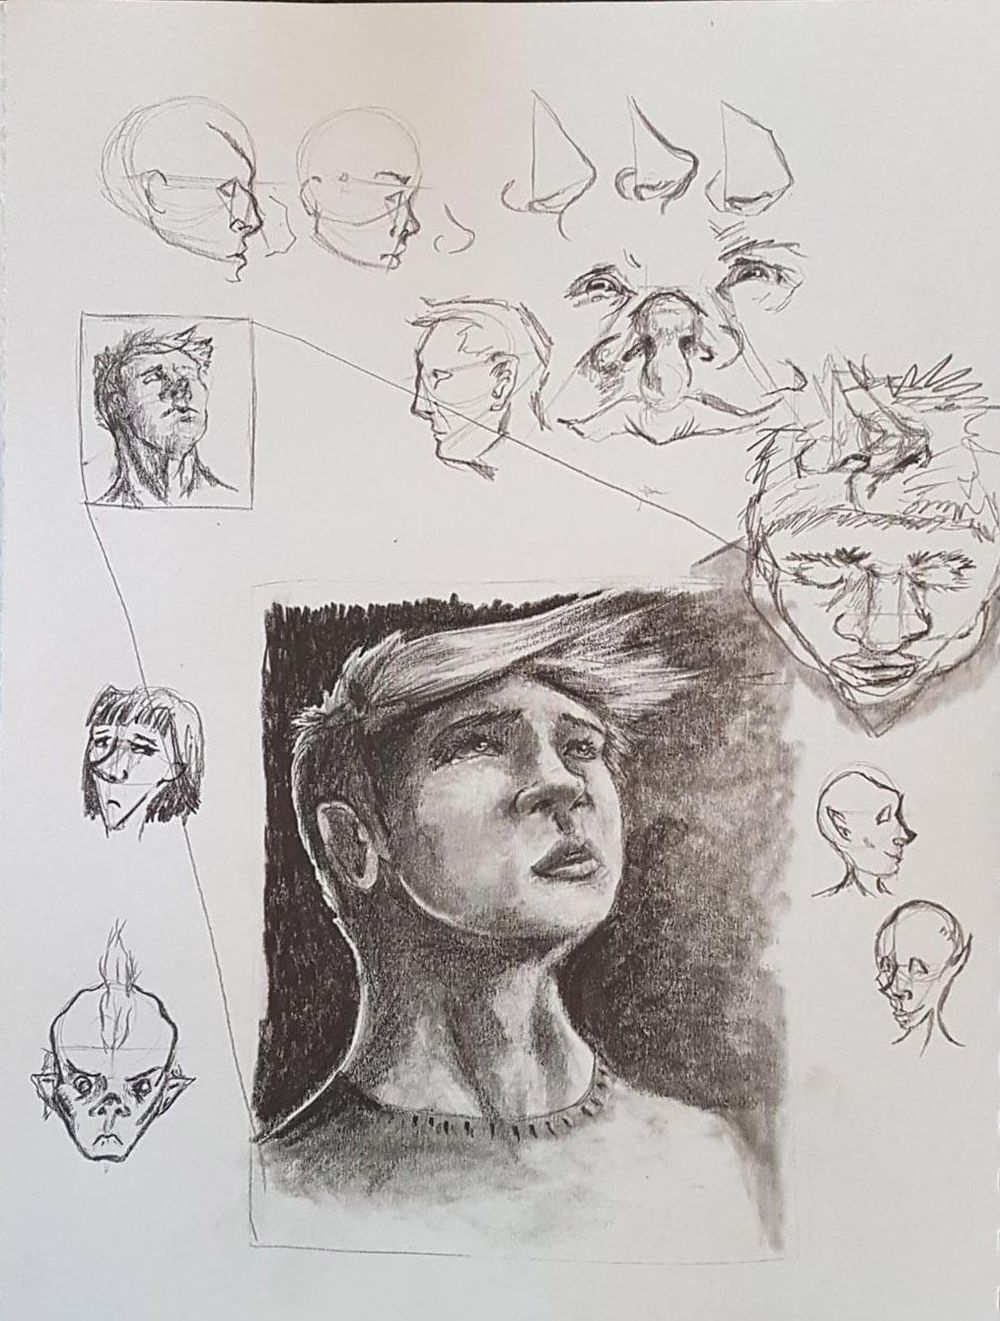 Noses - image 1 - student project